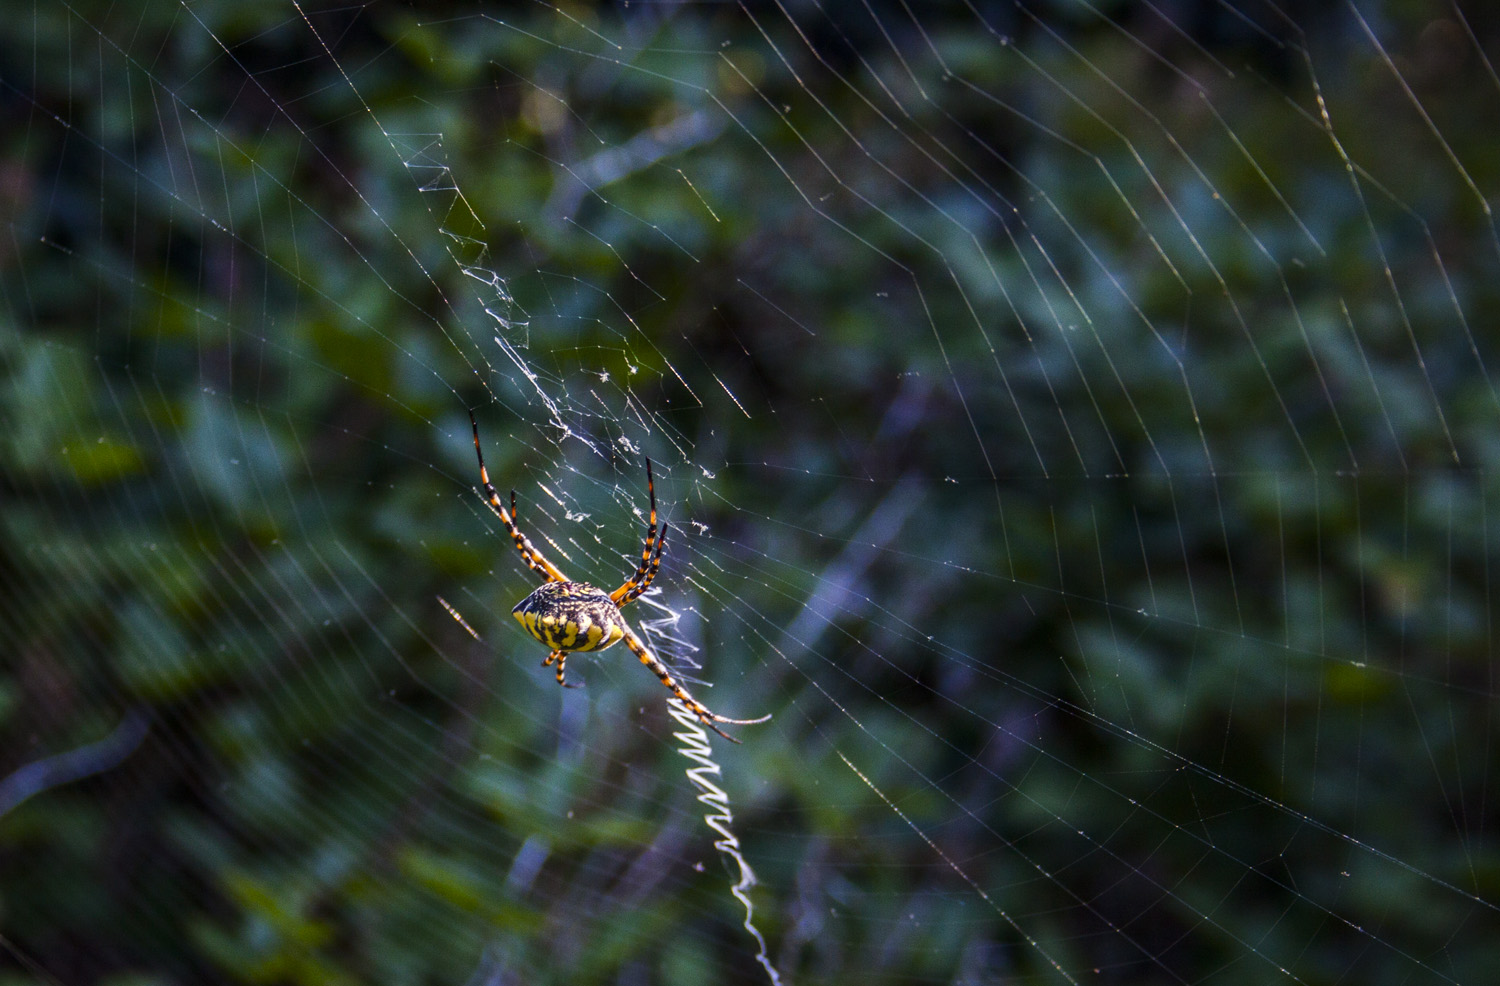 orb-web-spider